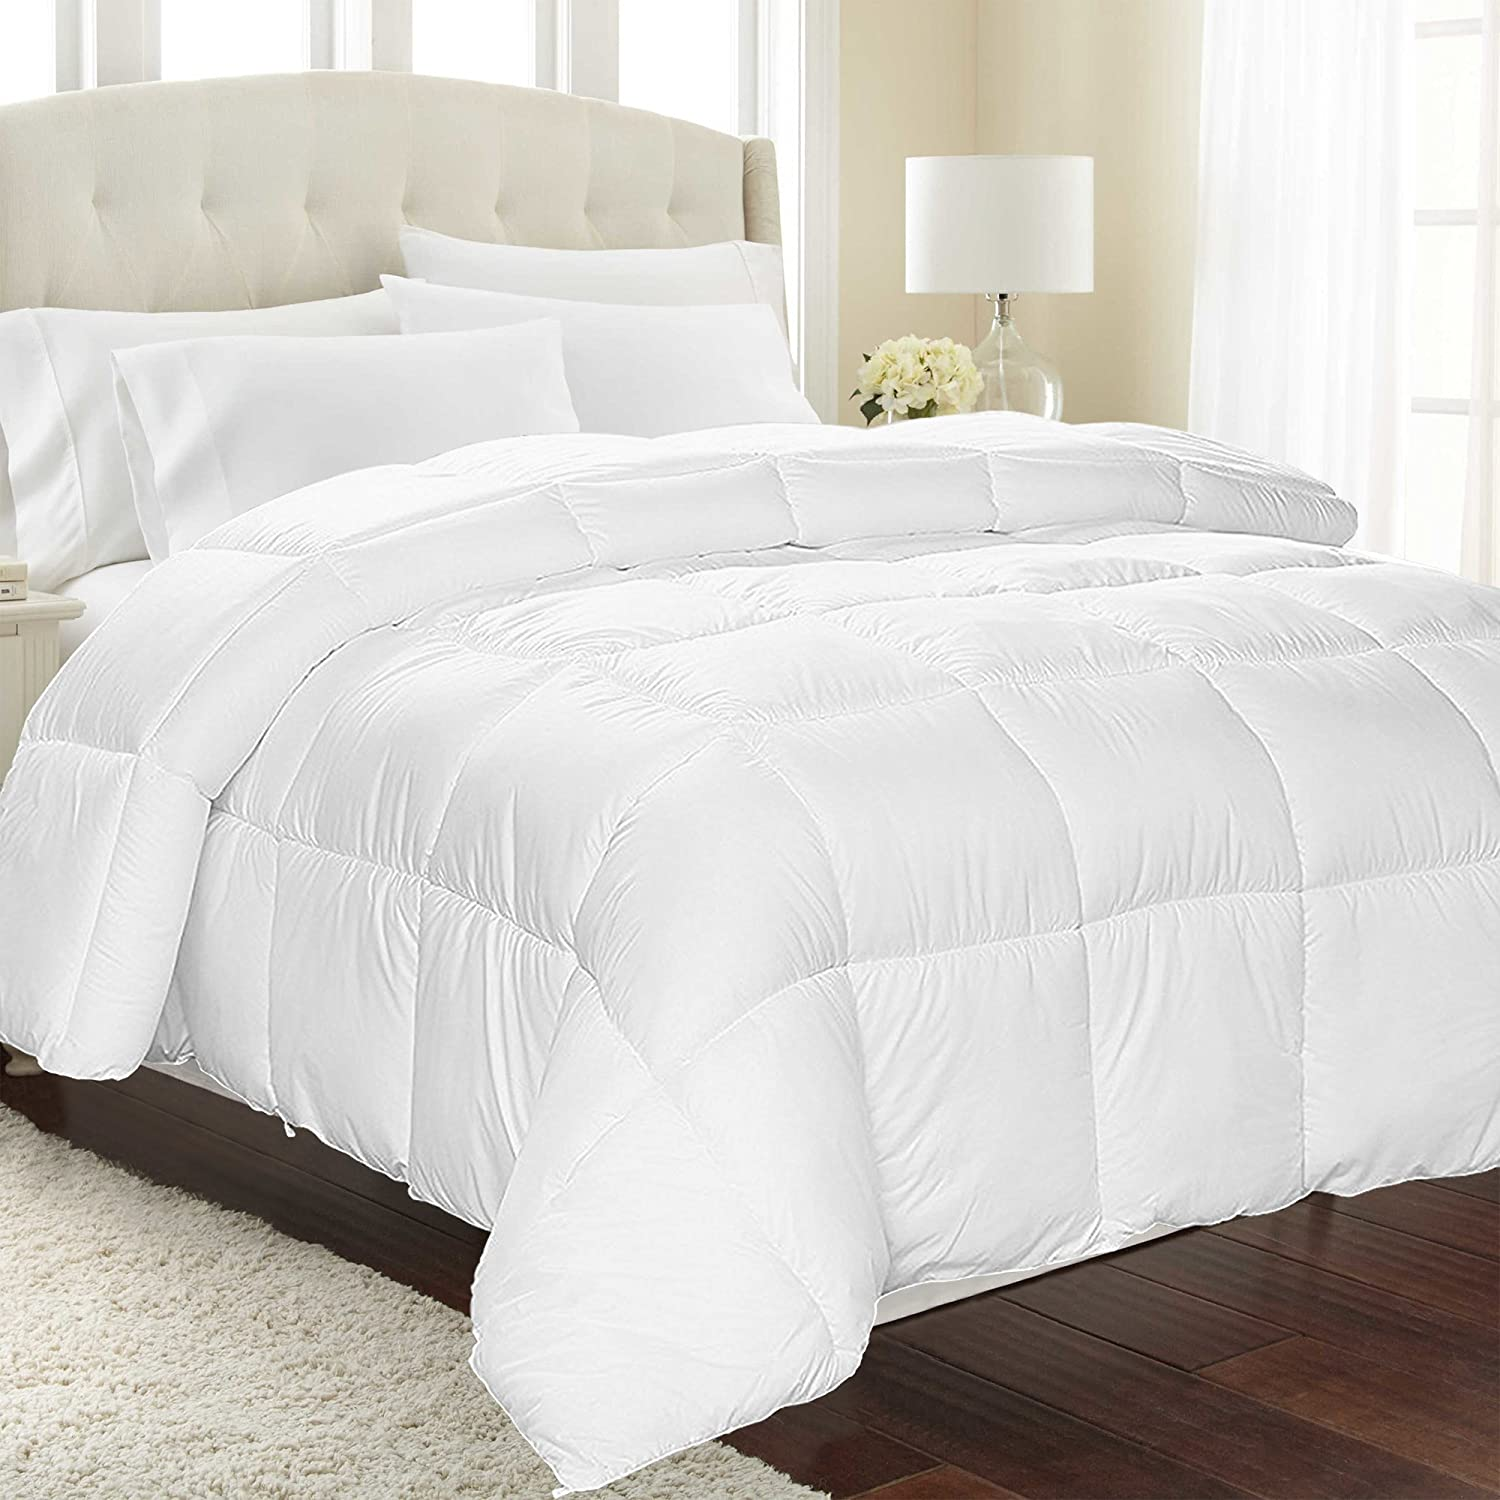 ip percale duvet piece home essence walmart zoey cover com set full cotton white